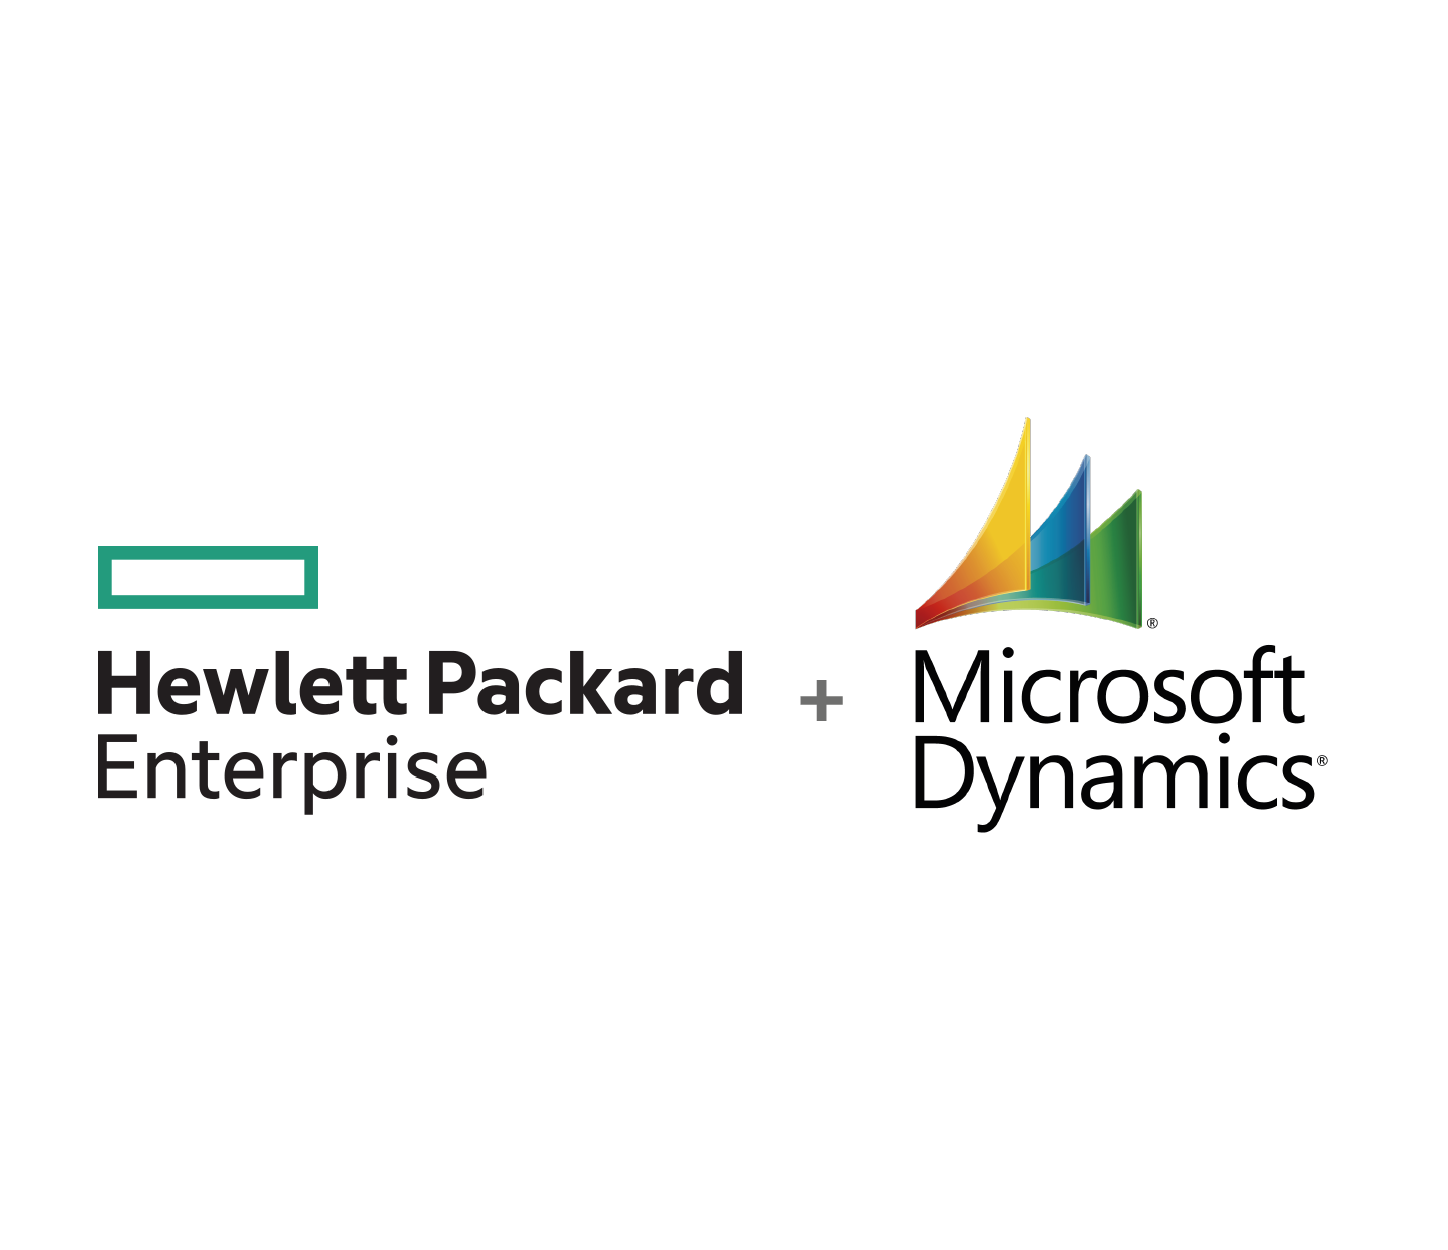 hpe_mdynamics5-01.png